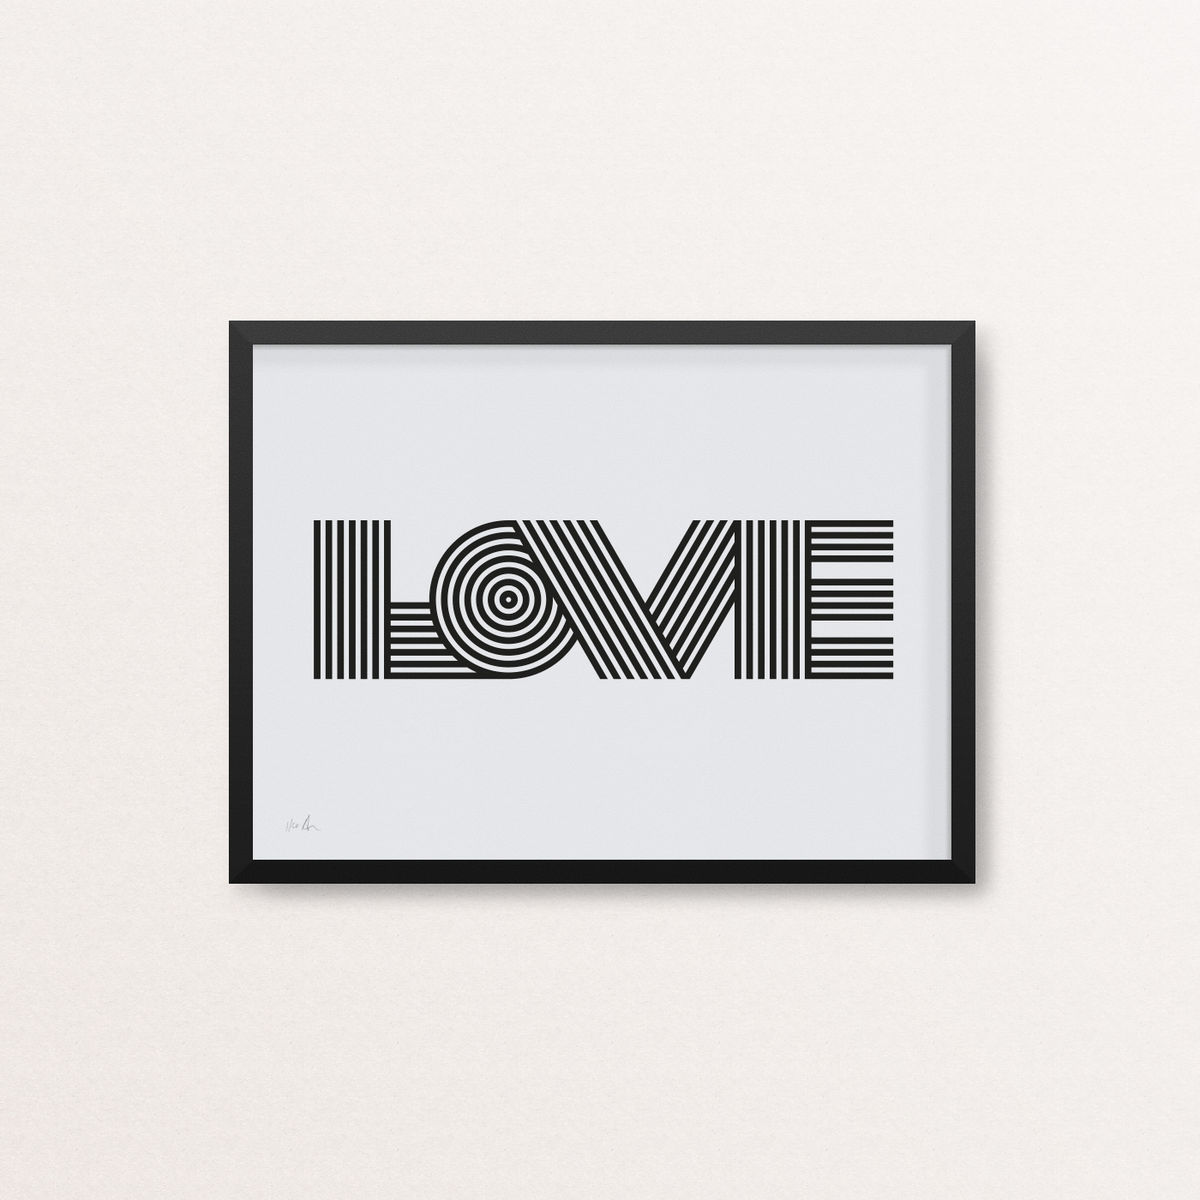 Love - Limited Edition Screen Print - product image